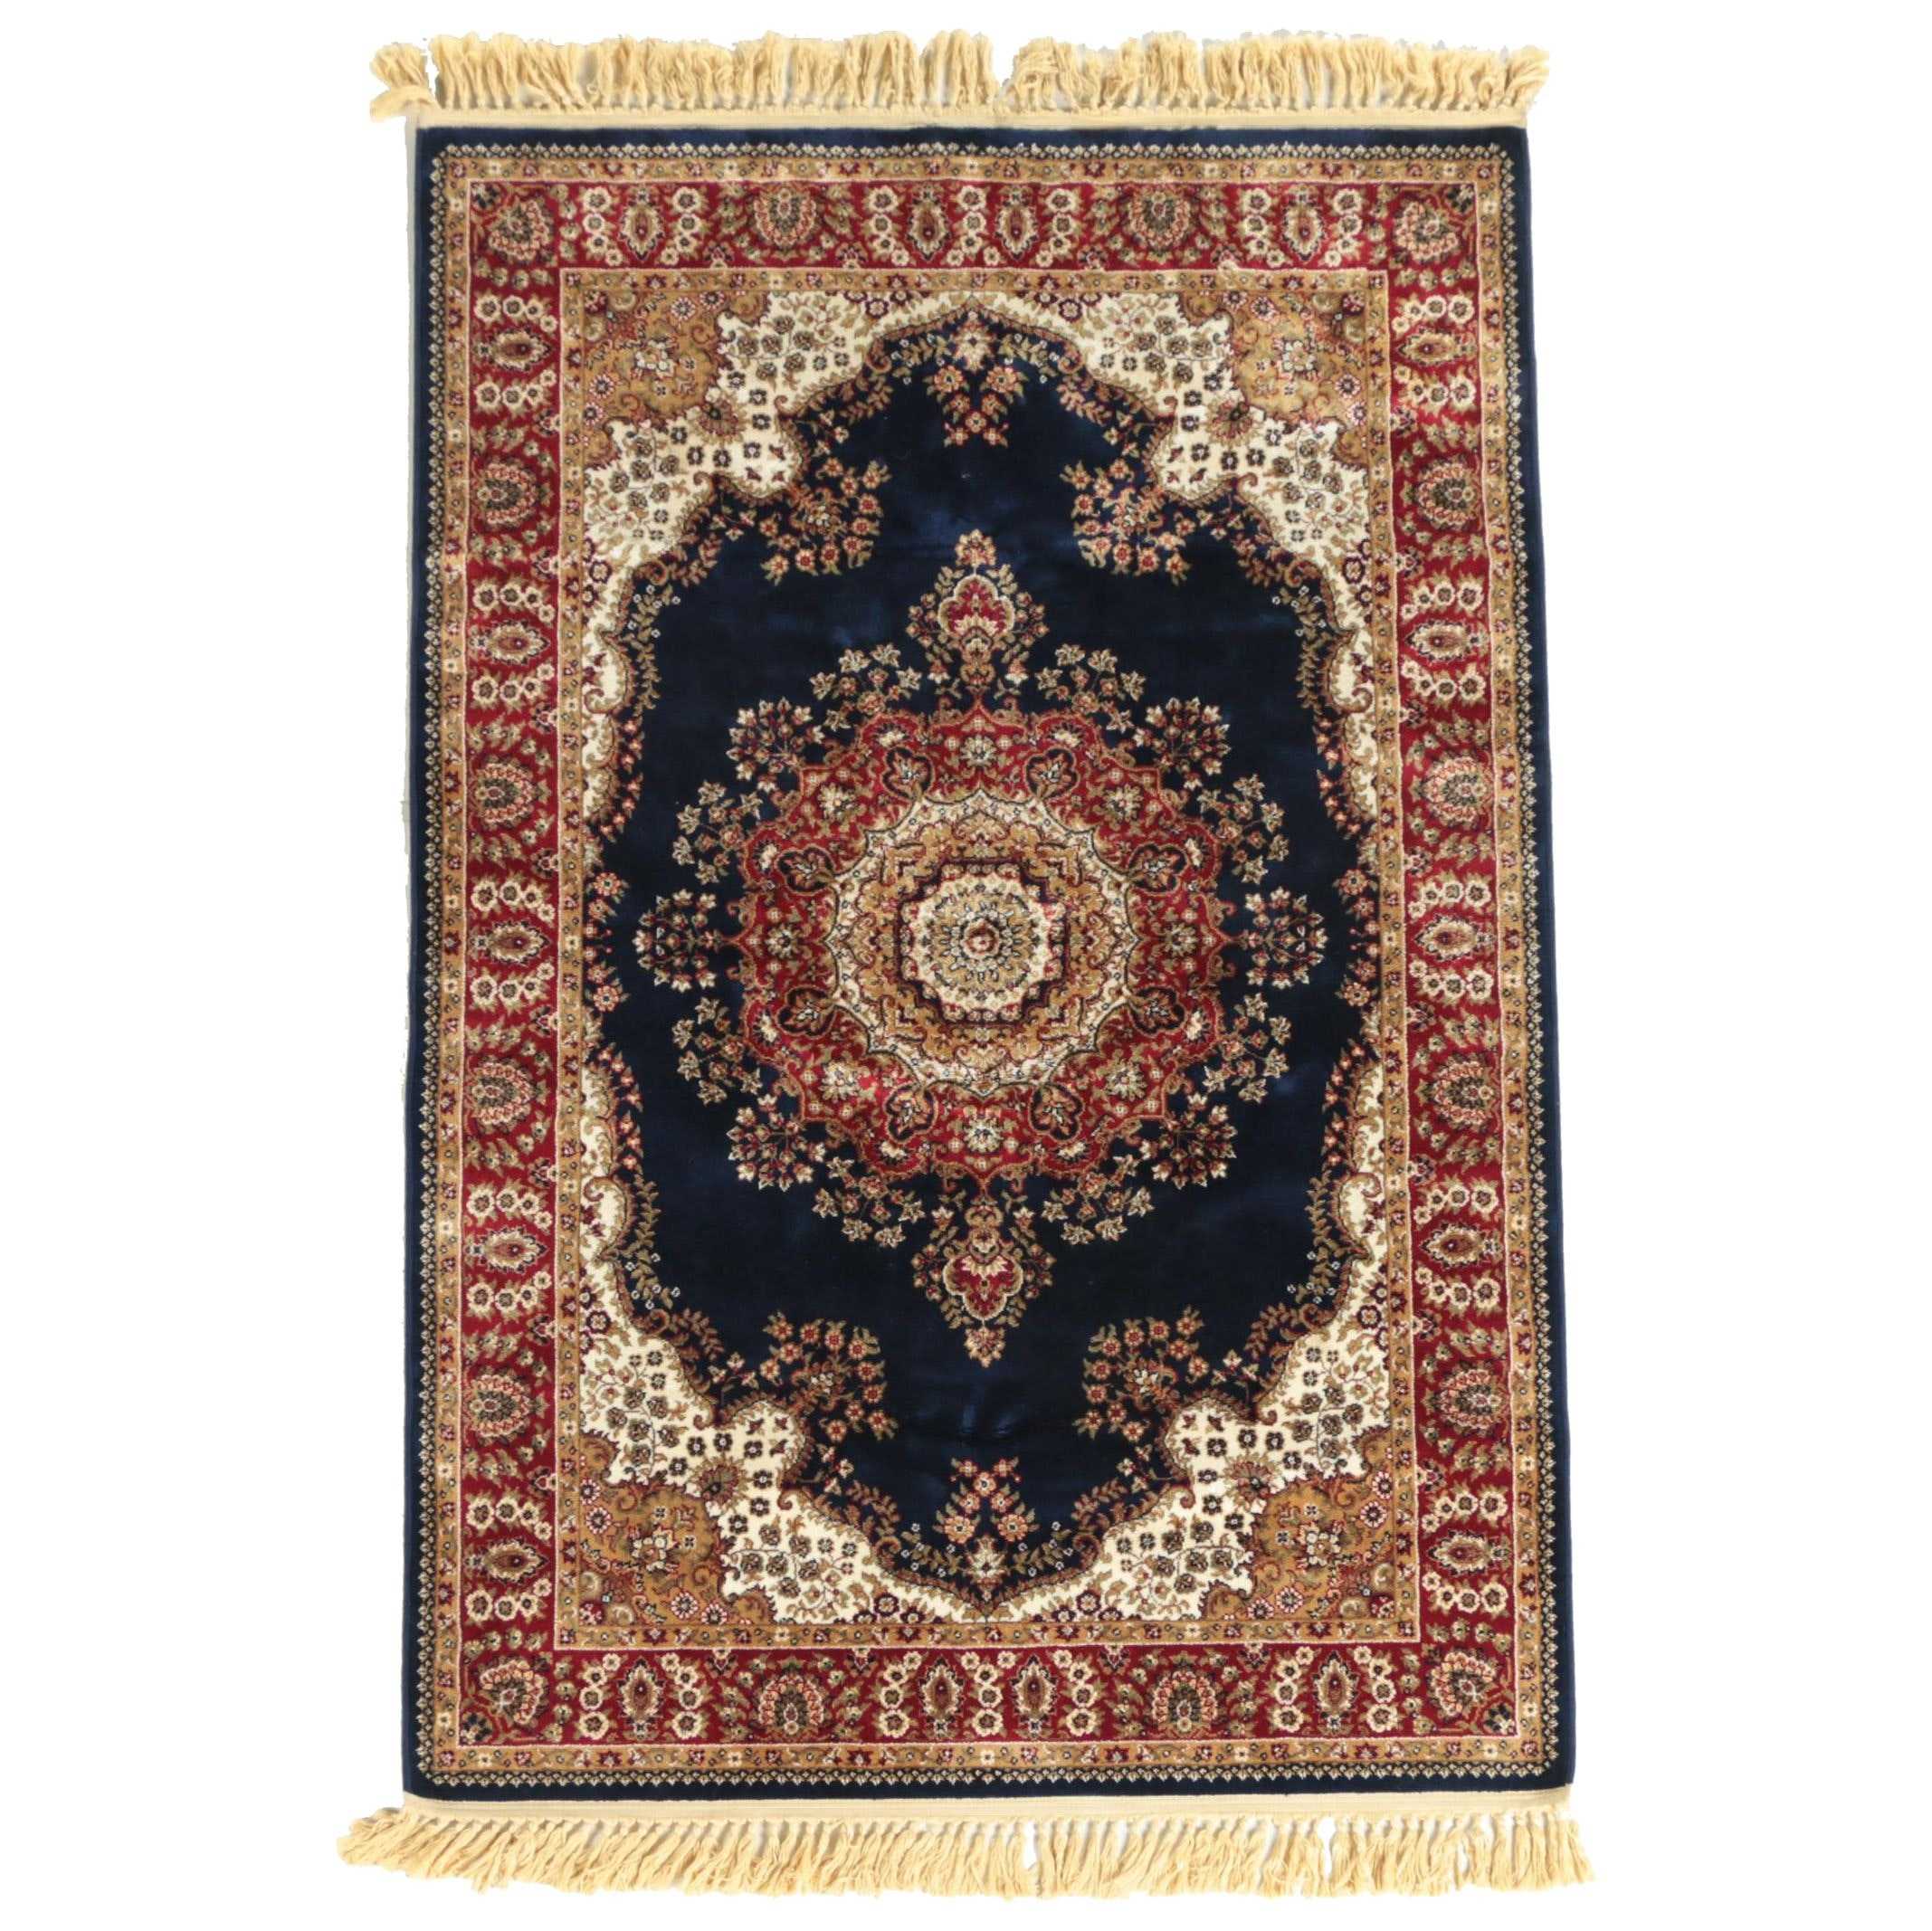 Power-Loomed Persian-Inspired Area Rug